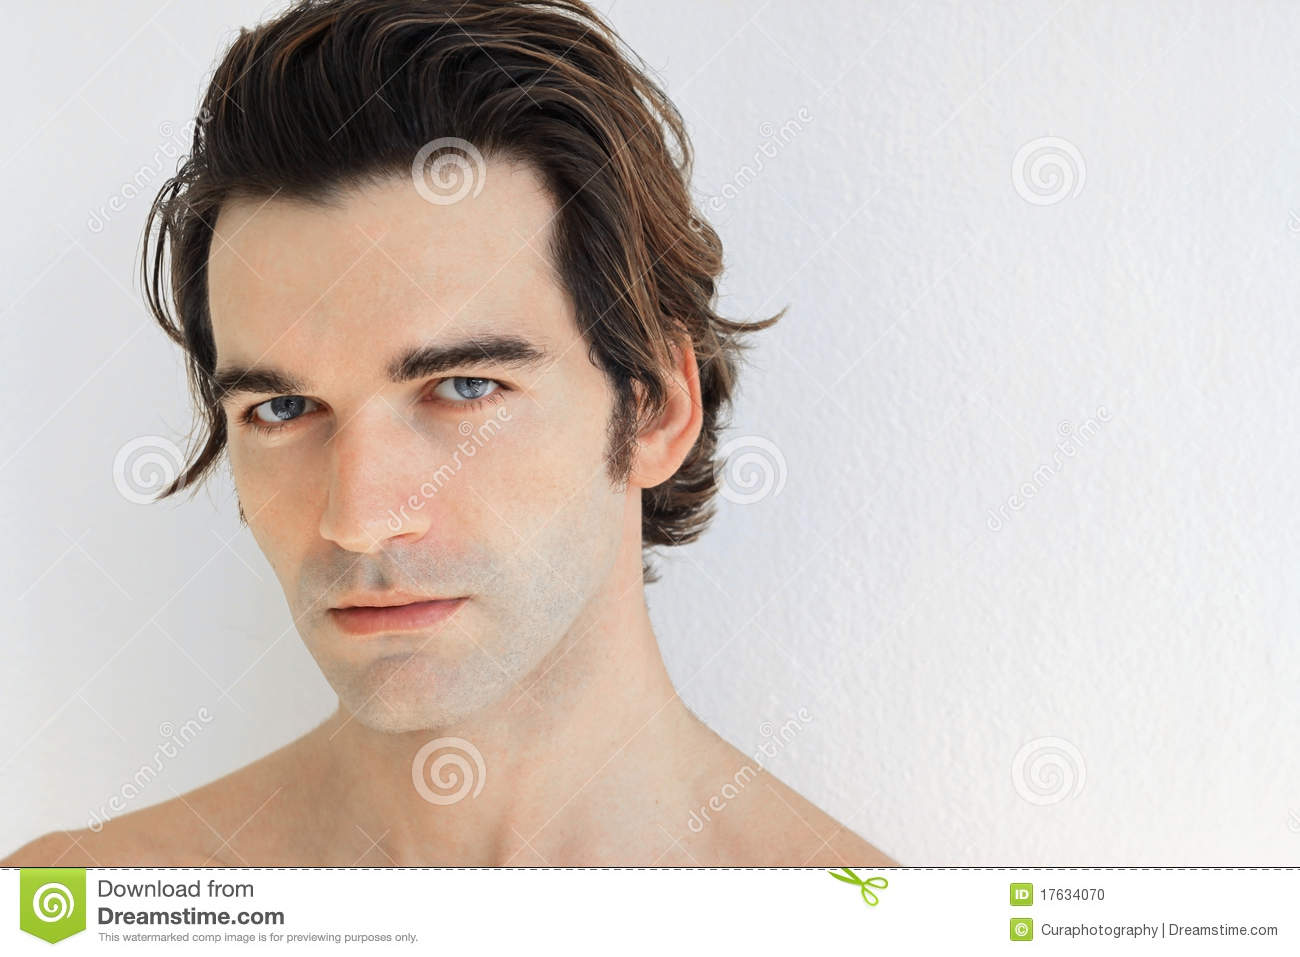 f4f7c44ad886 Young beautiful man stock photo. Image of dating